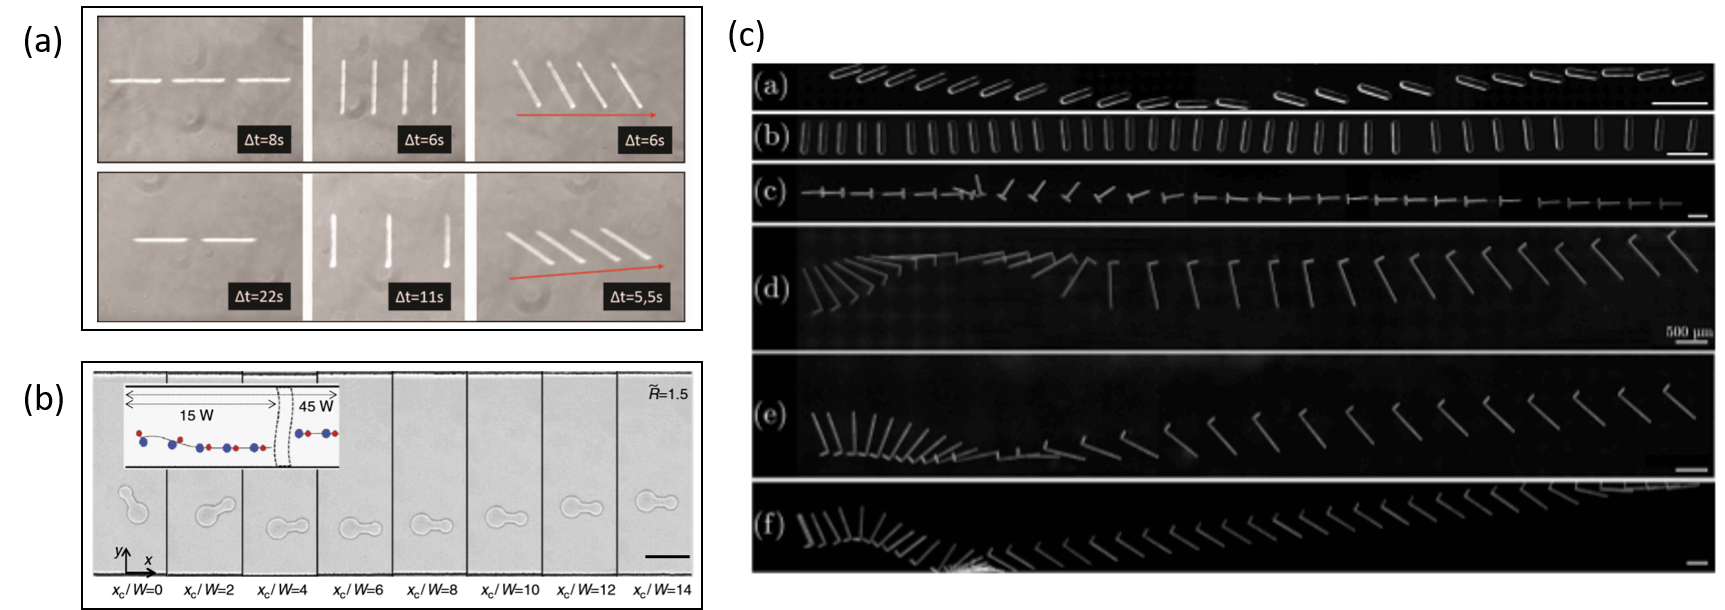 Confined particles in microfluidic devices a review   Elveflow